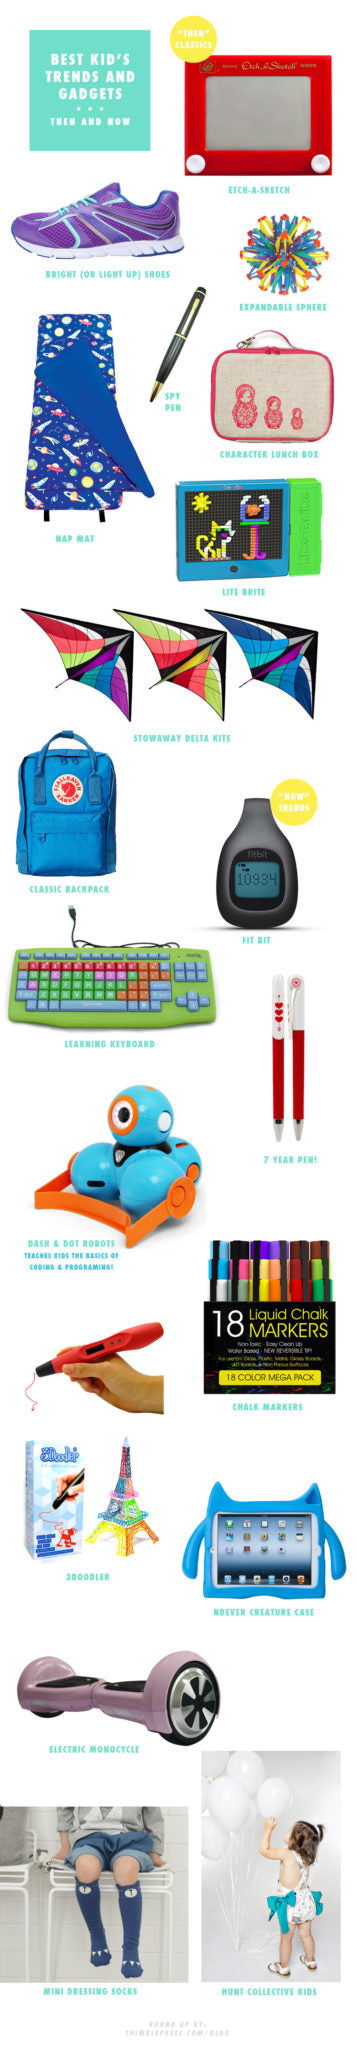 KIDS_TRENDS_AND_GADGETS